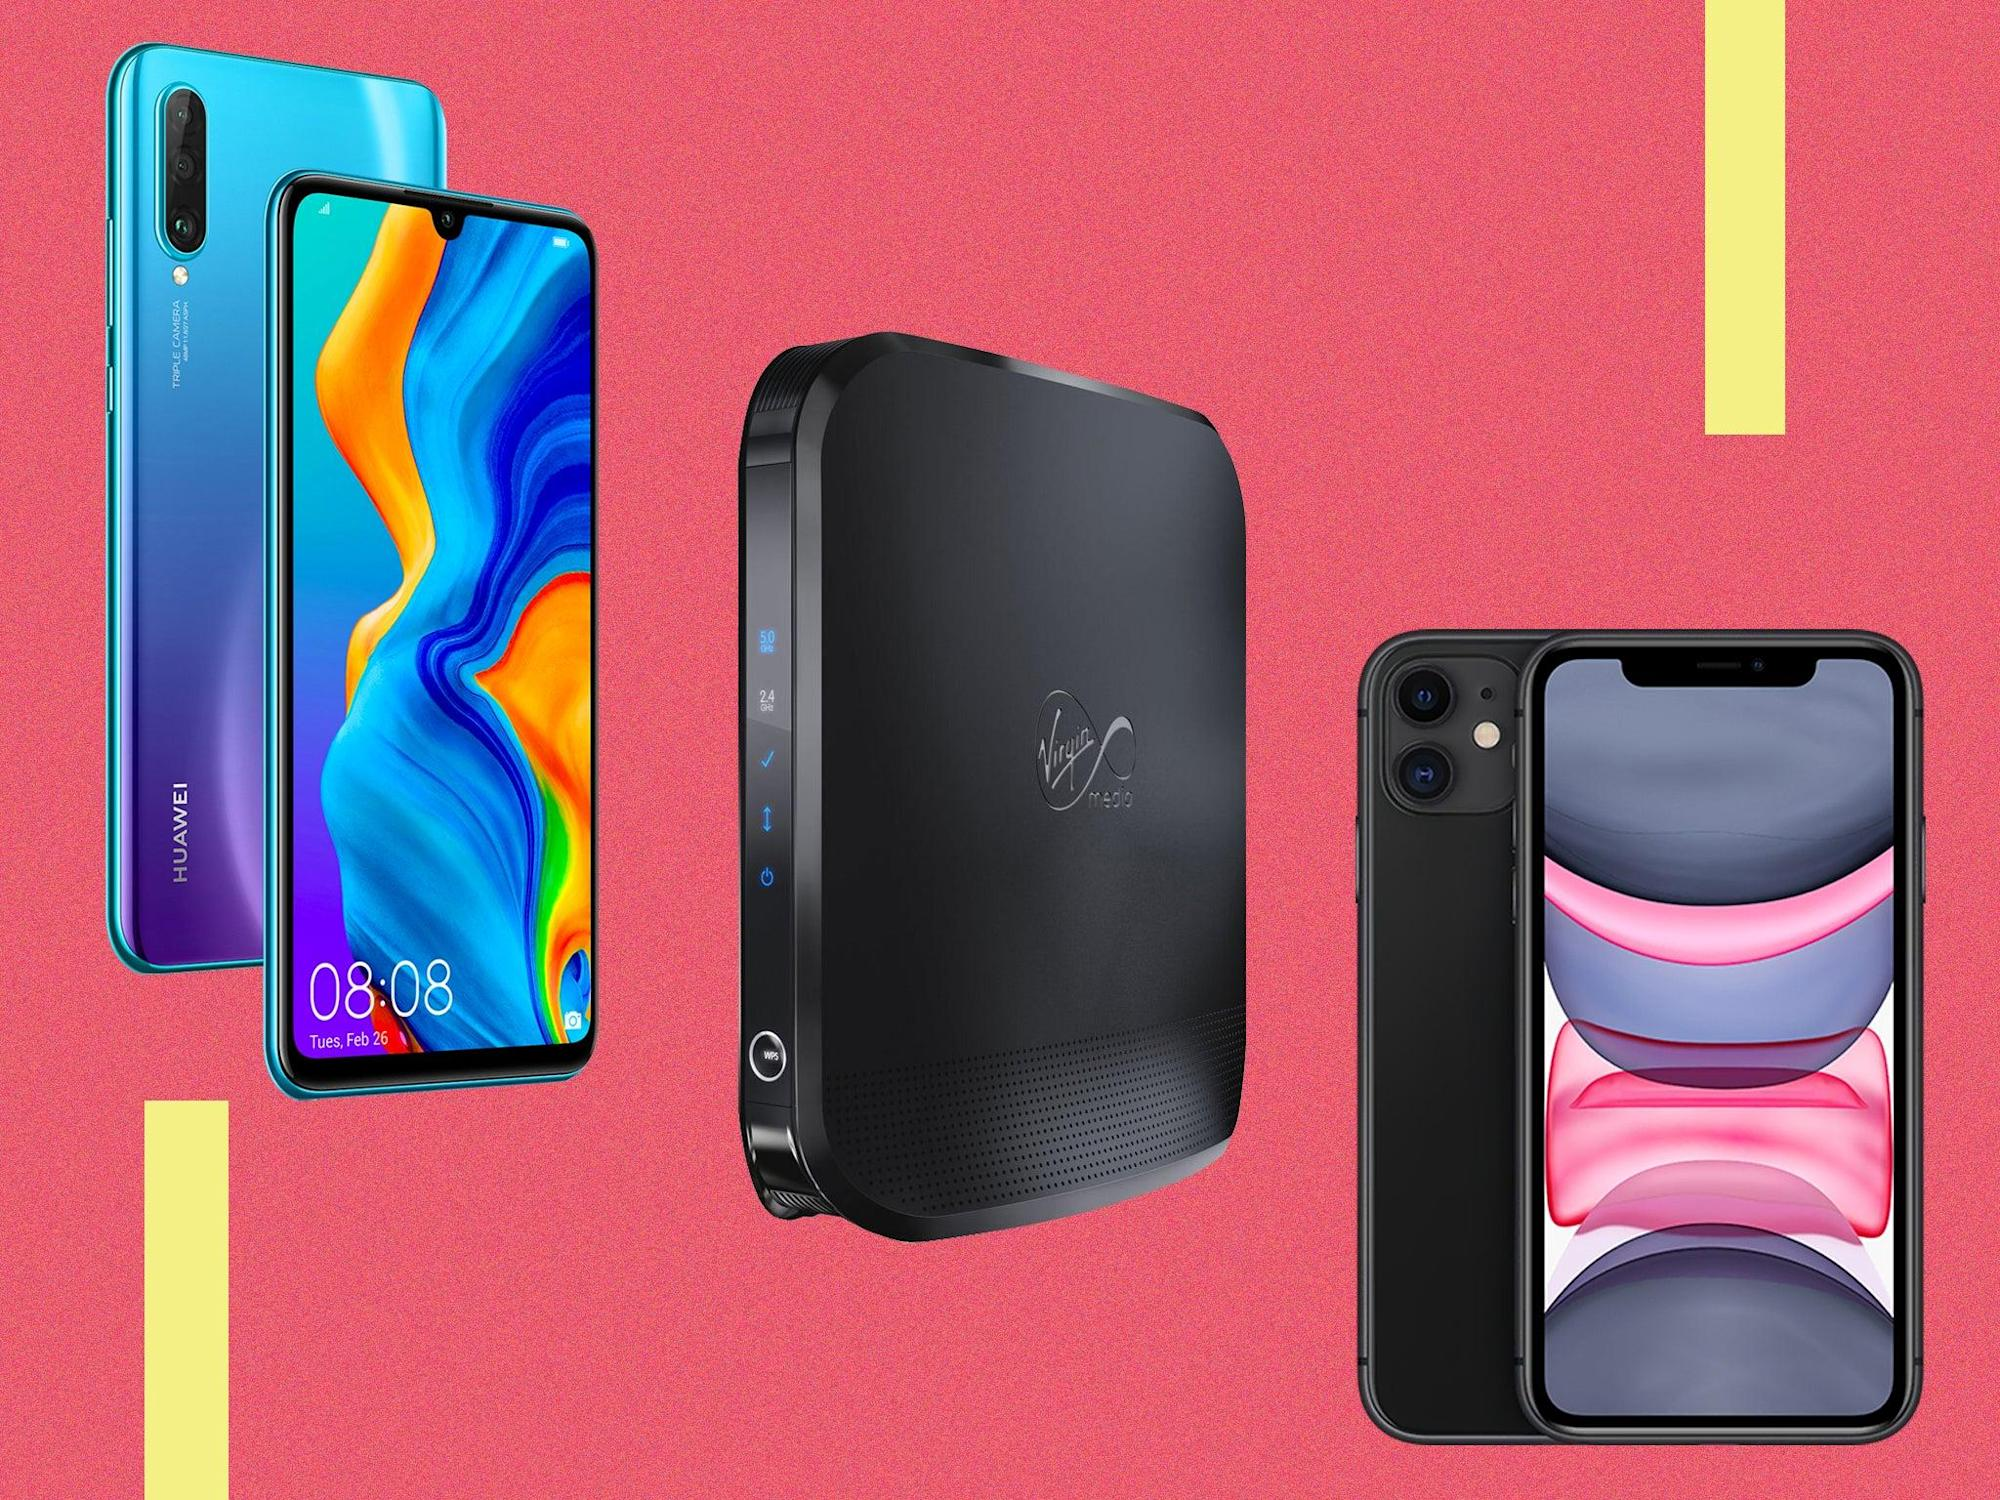 Virgin Media Black Friday deals: Best offers on TV, broadband and phone packages